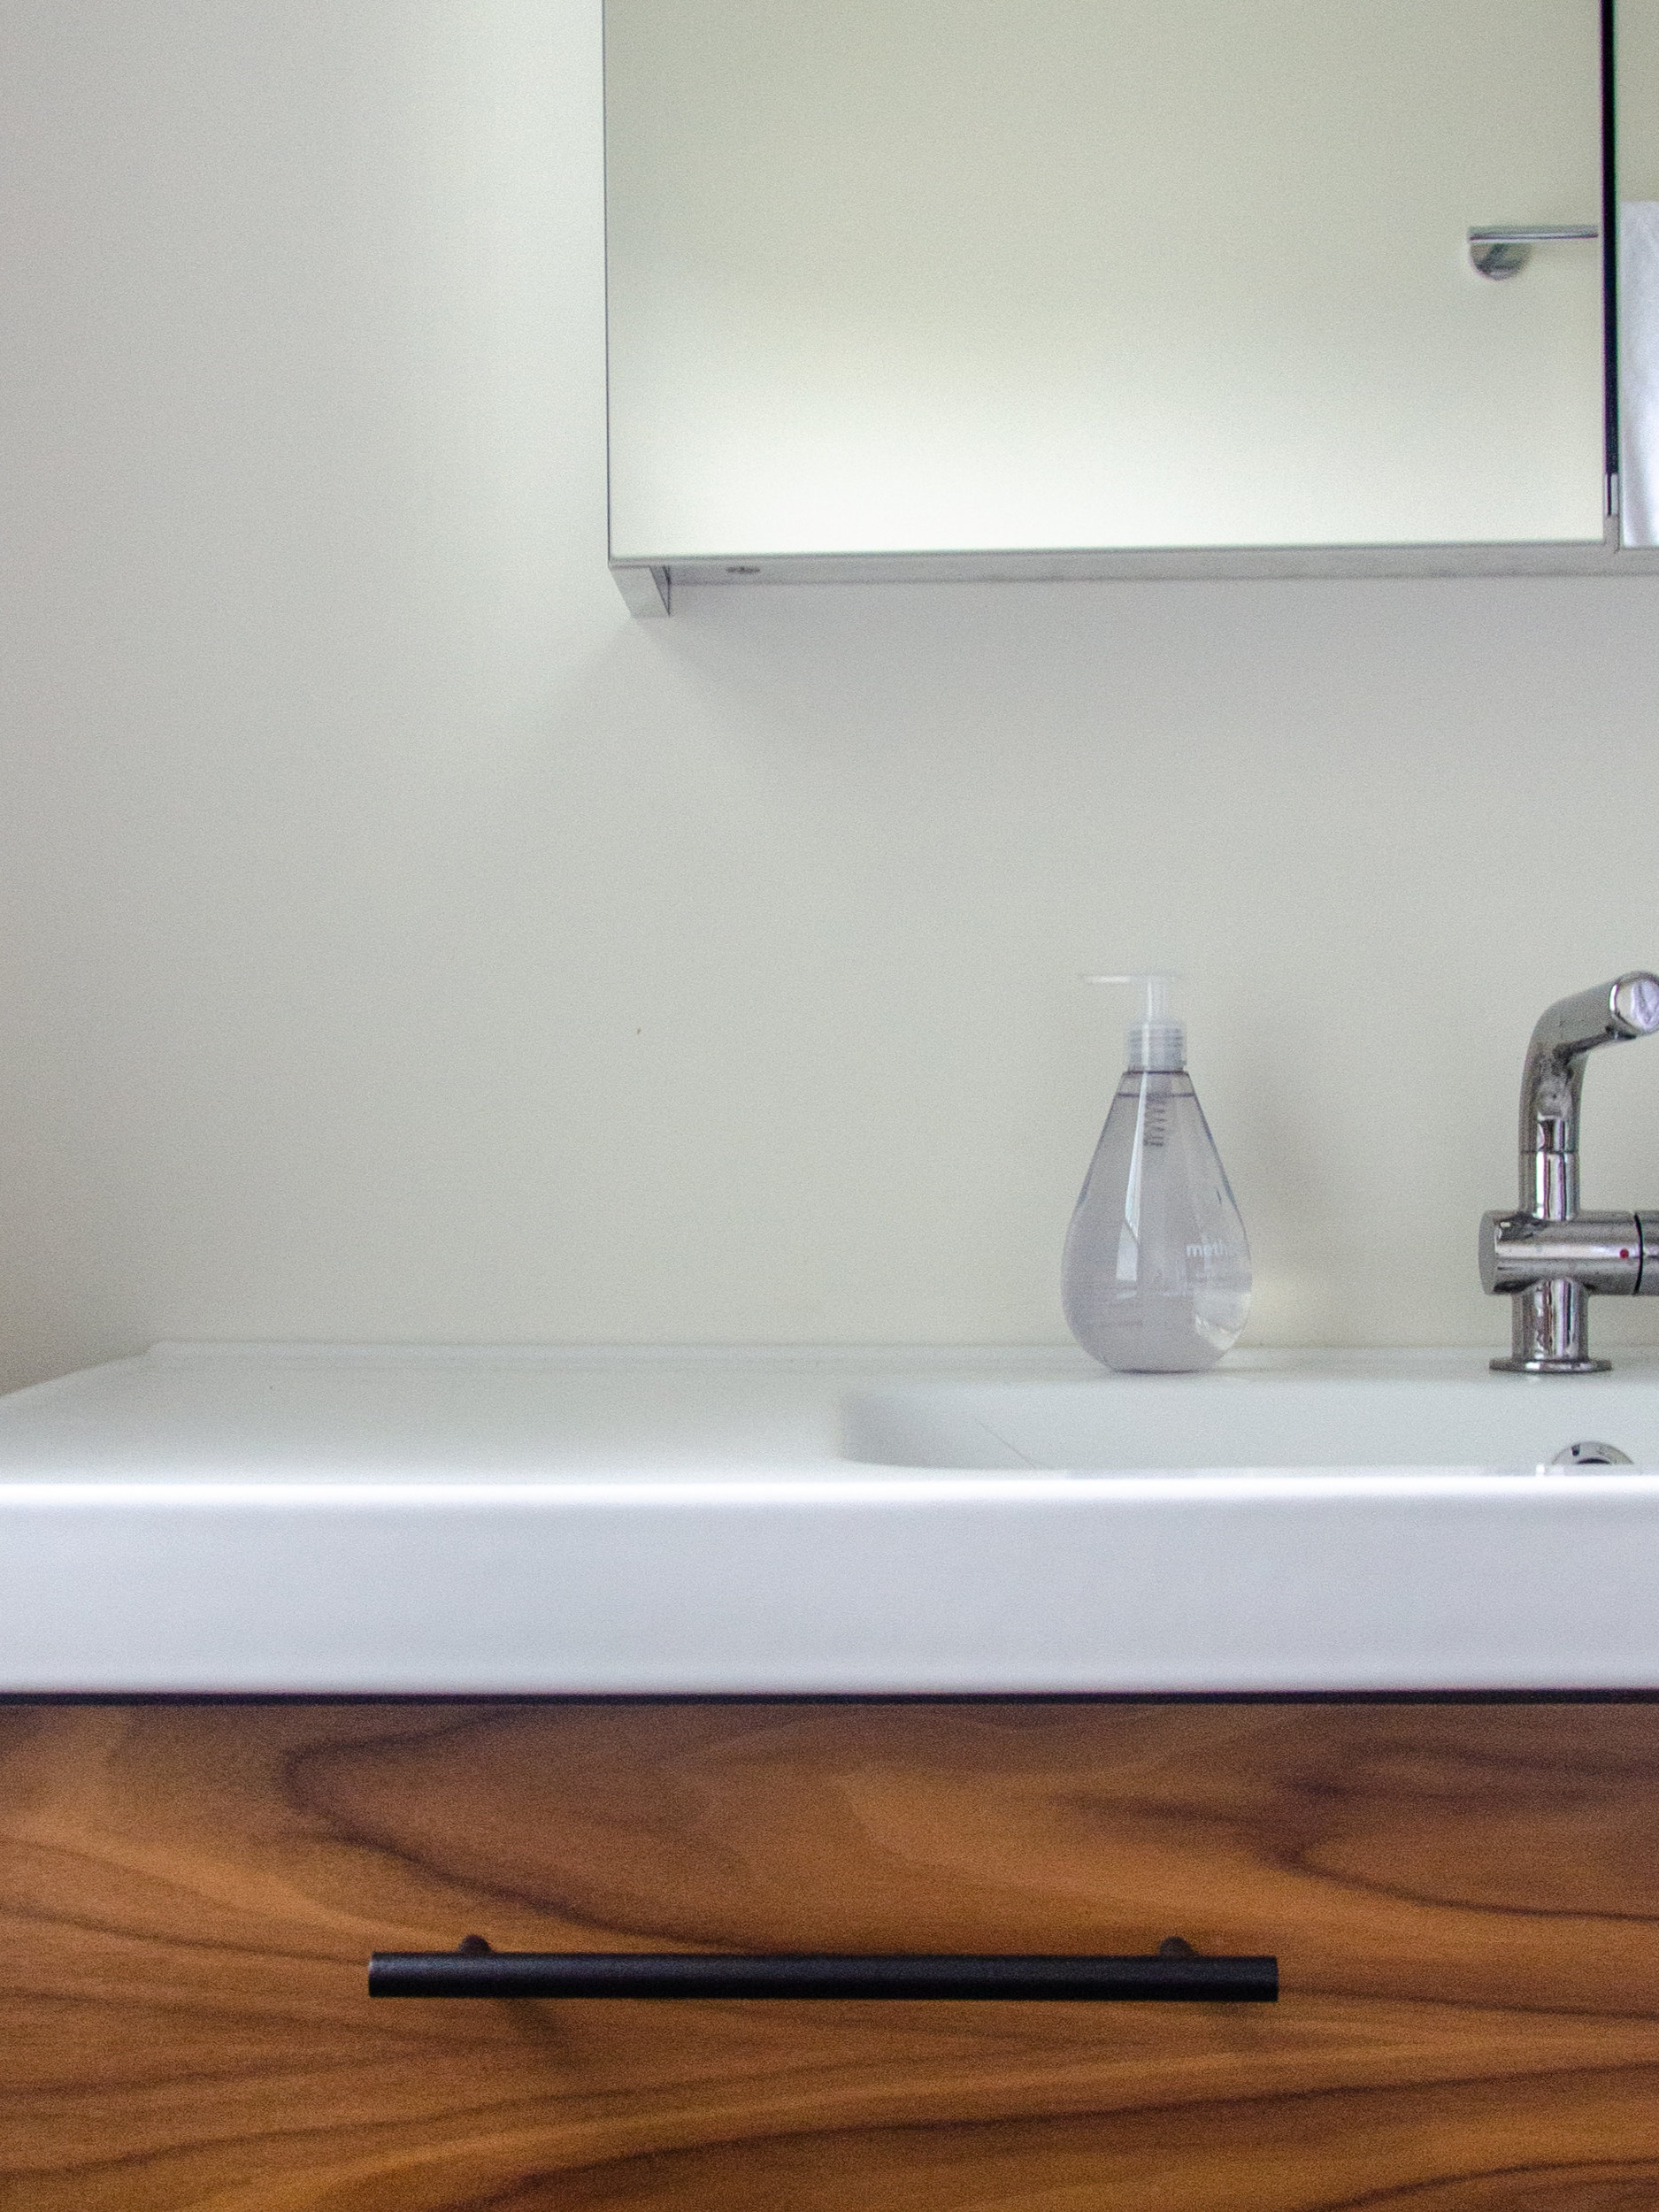 Ikea Godmorgon Bathroom Vanity And Mirror Our Review Salt Rook